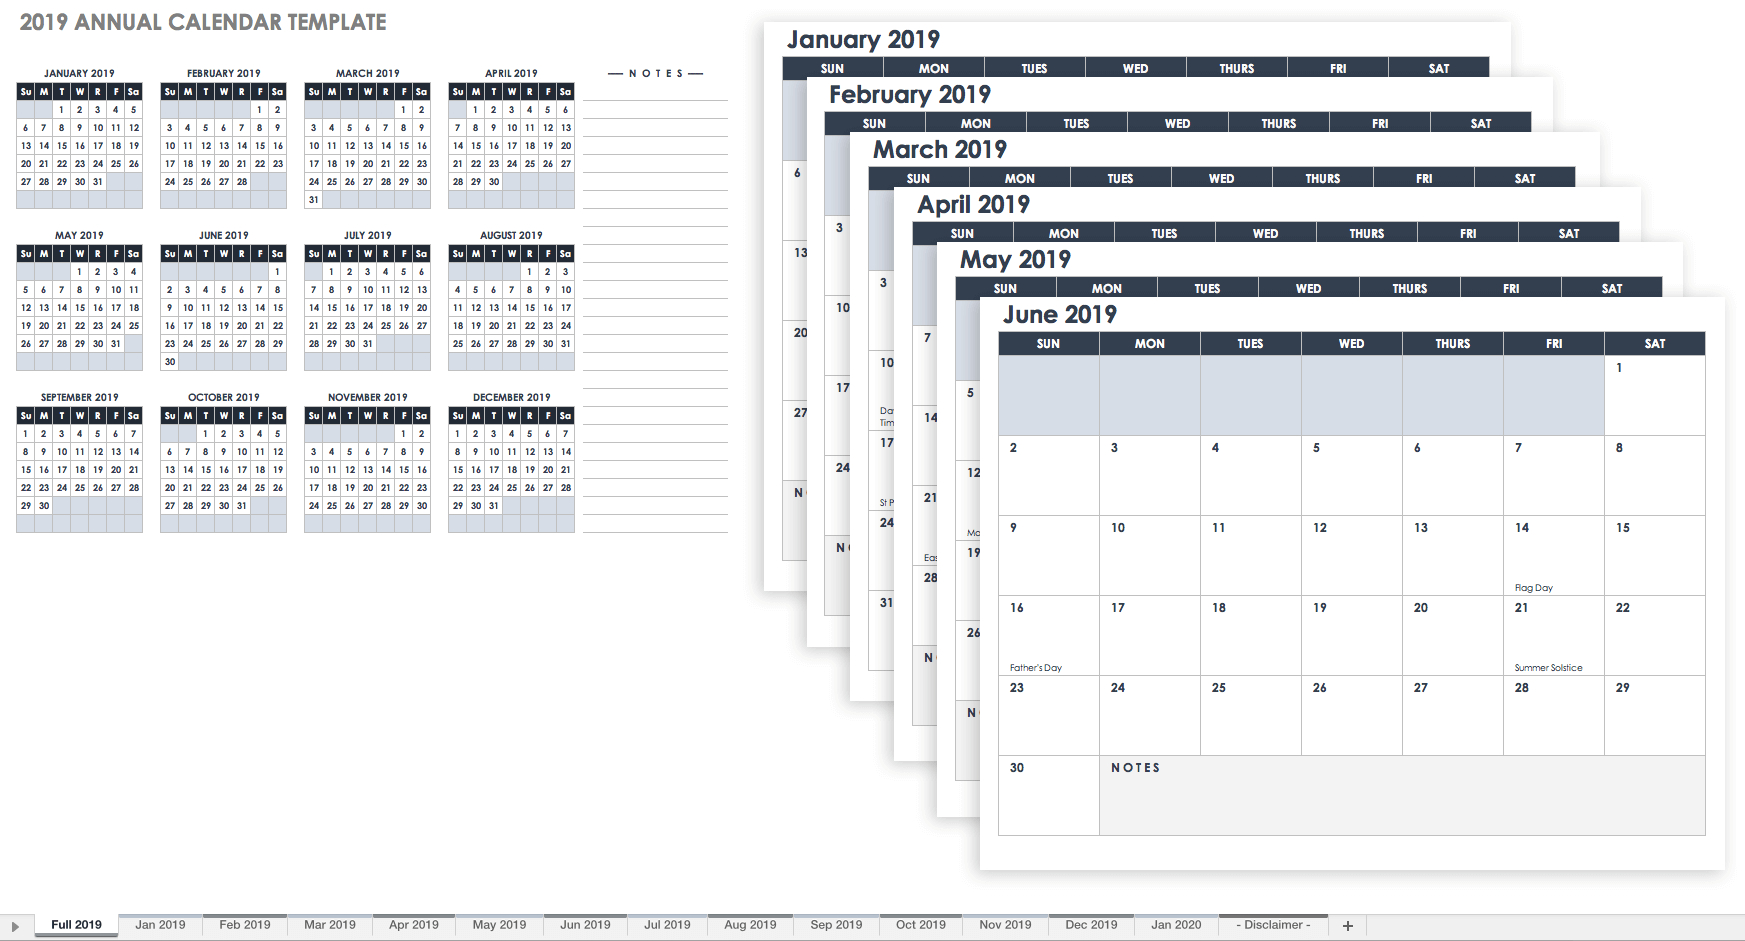 15 Free Monthly Calendar Templates | Smartsheet inside Print Blank Workday Calendar For August